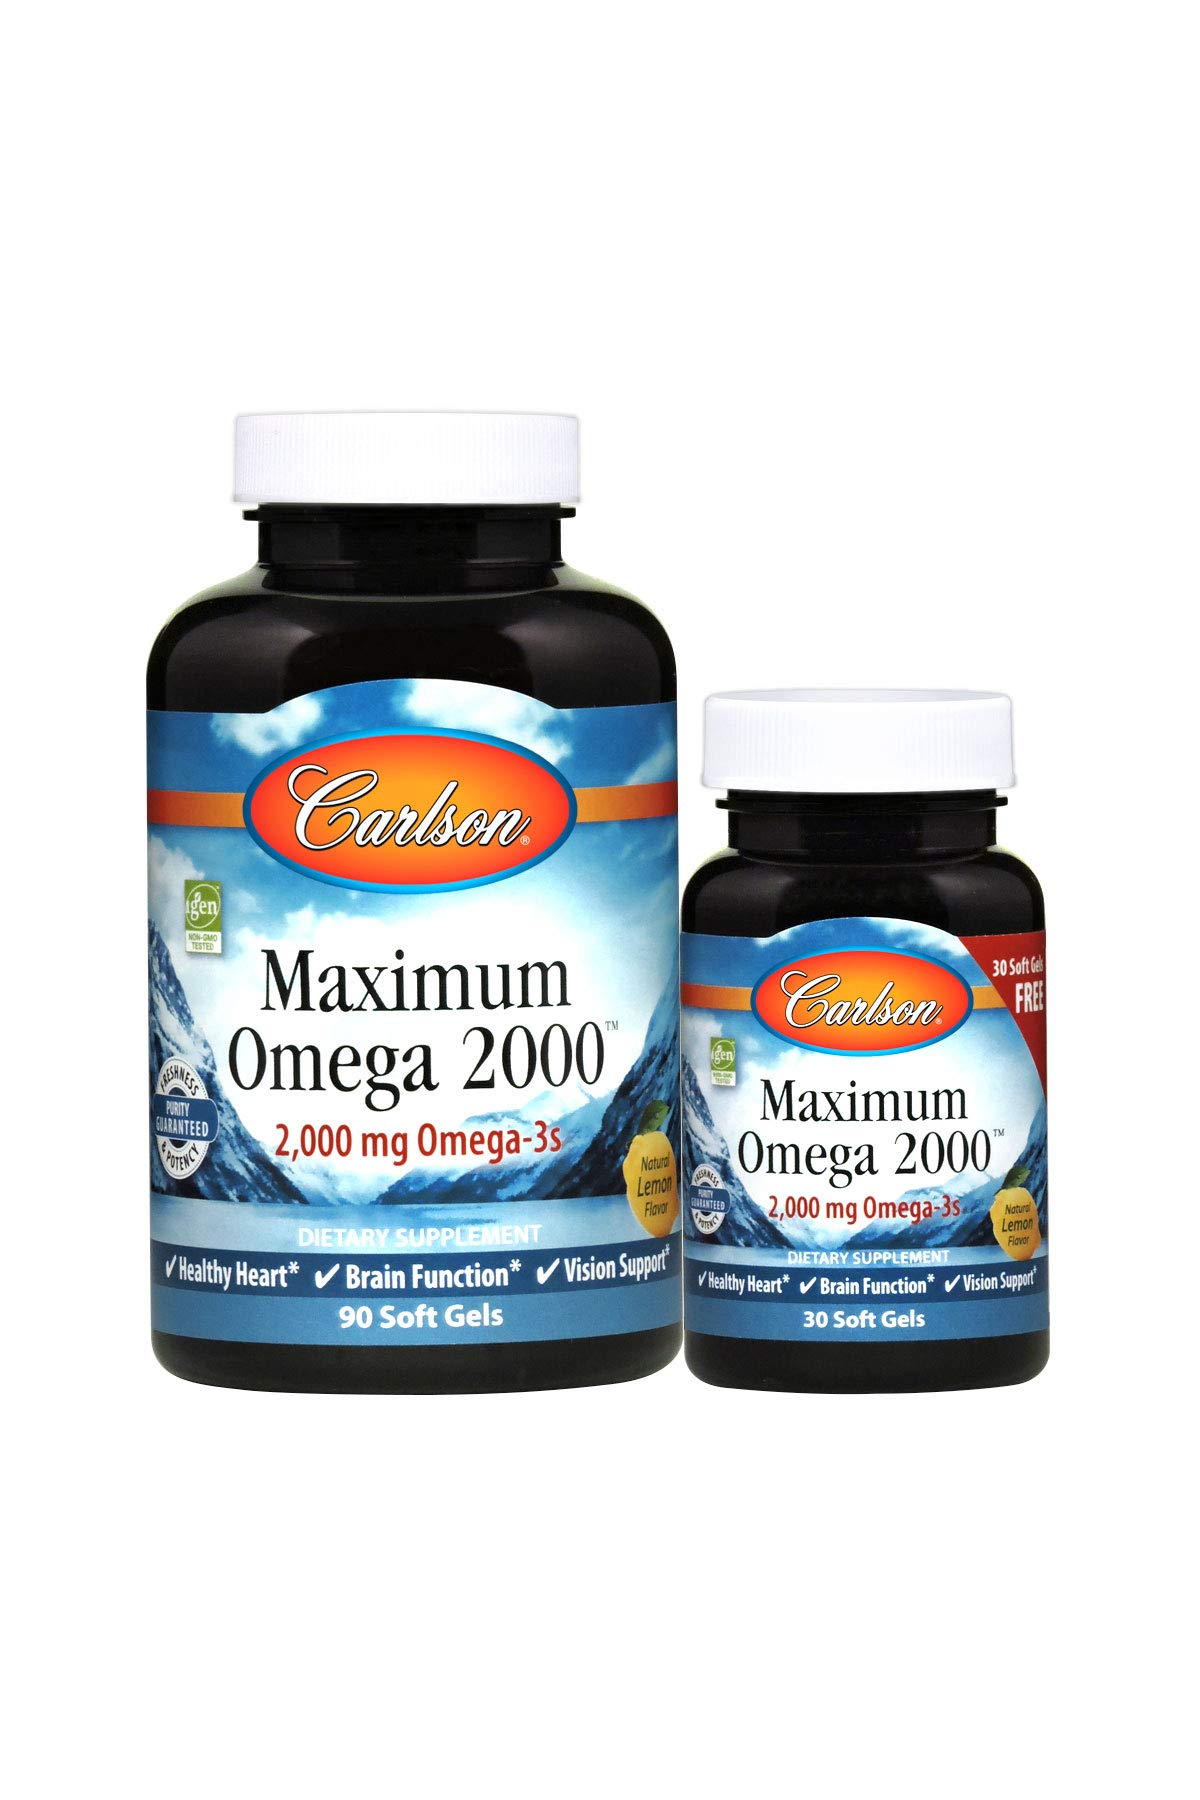 Carlson - Maximum Omega 2000, 2000 mg Omega-3 Fatty Acids Including EPA and DHA, Wild-Caught, Norwegian Fish Oil Supplement, Sustainably Sourced Fish Oil Capsules, Lemon, 90+30 Softgels by Carlson